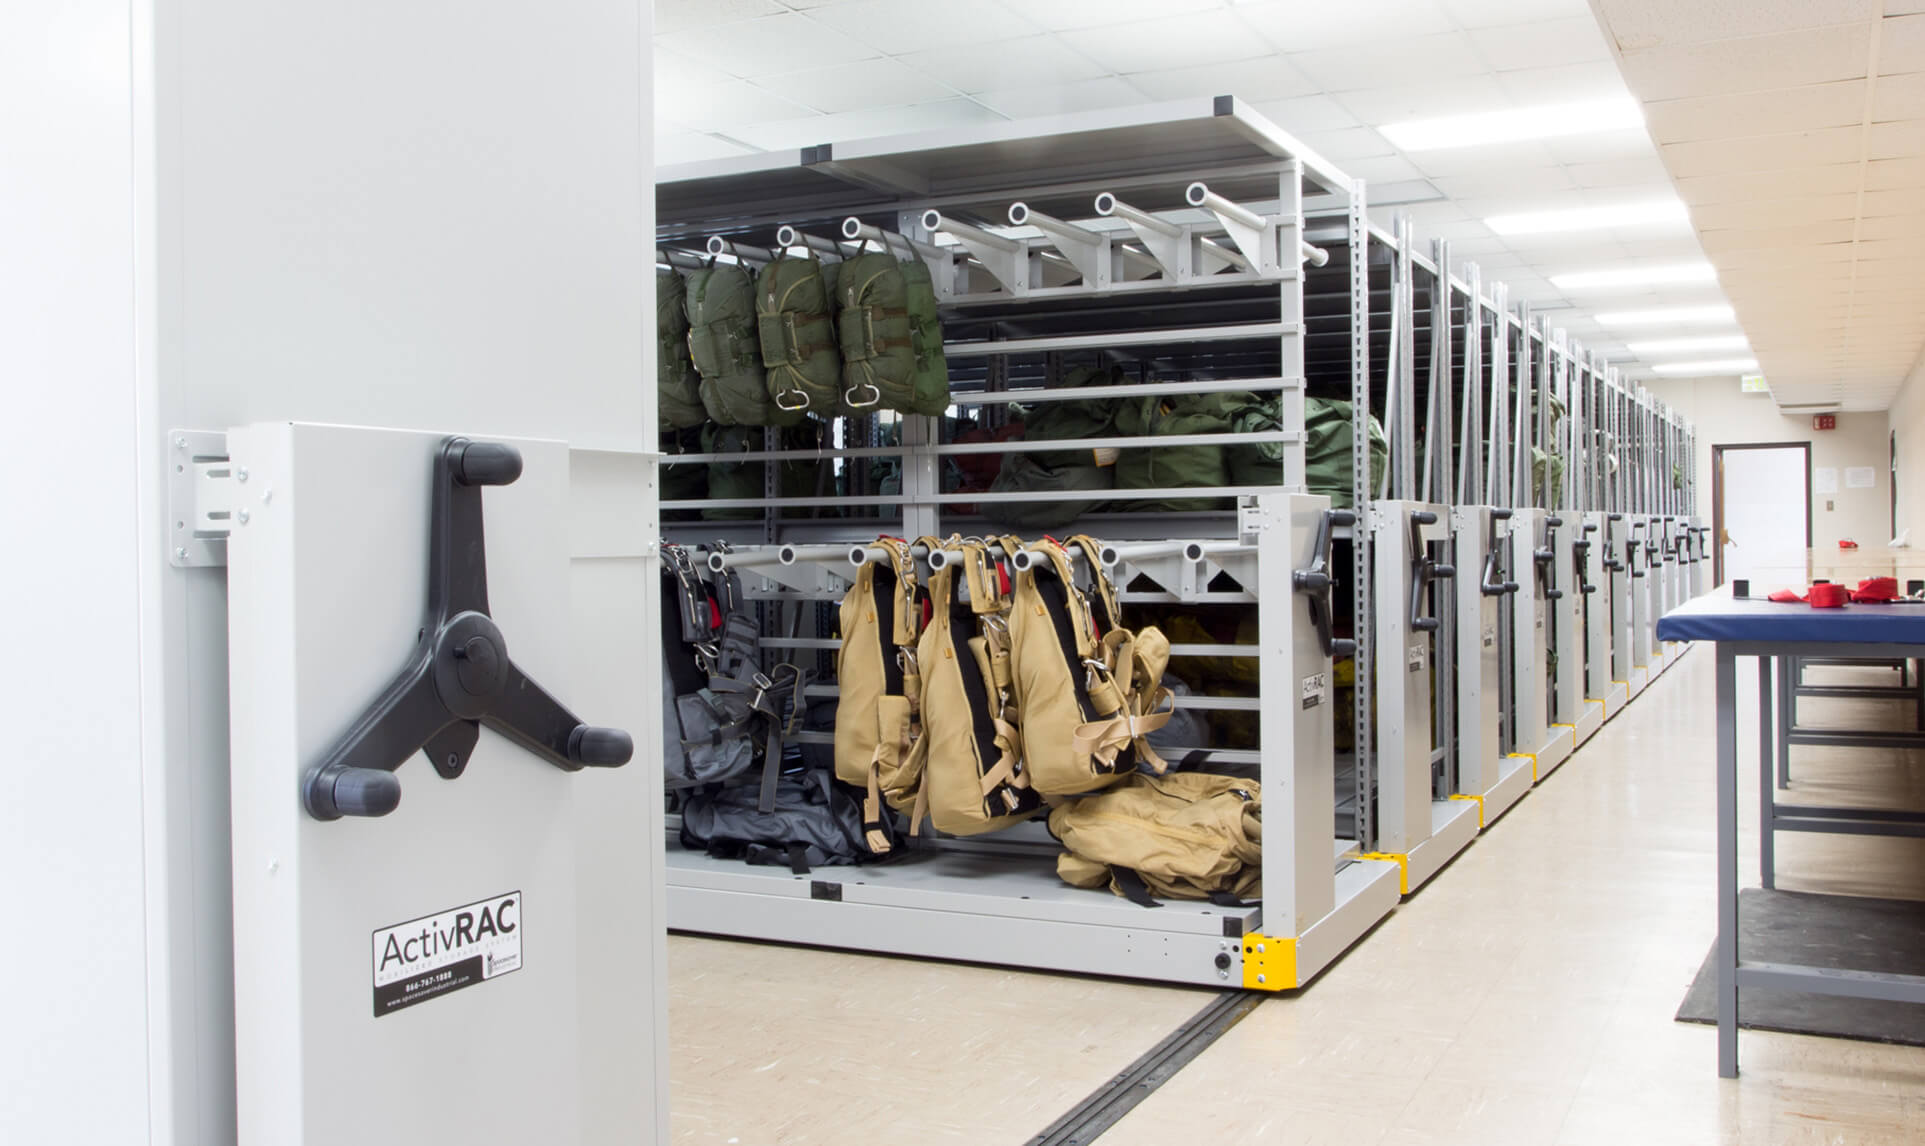 Military Storage - Parachute storage on cantilever racks